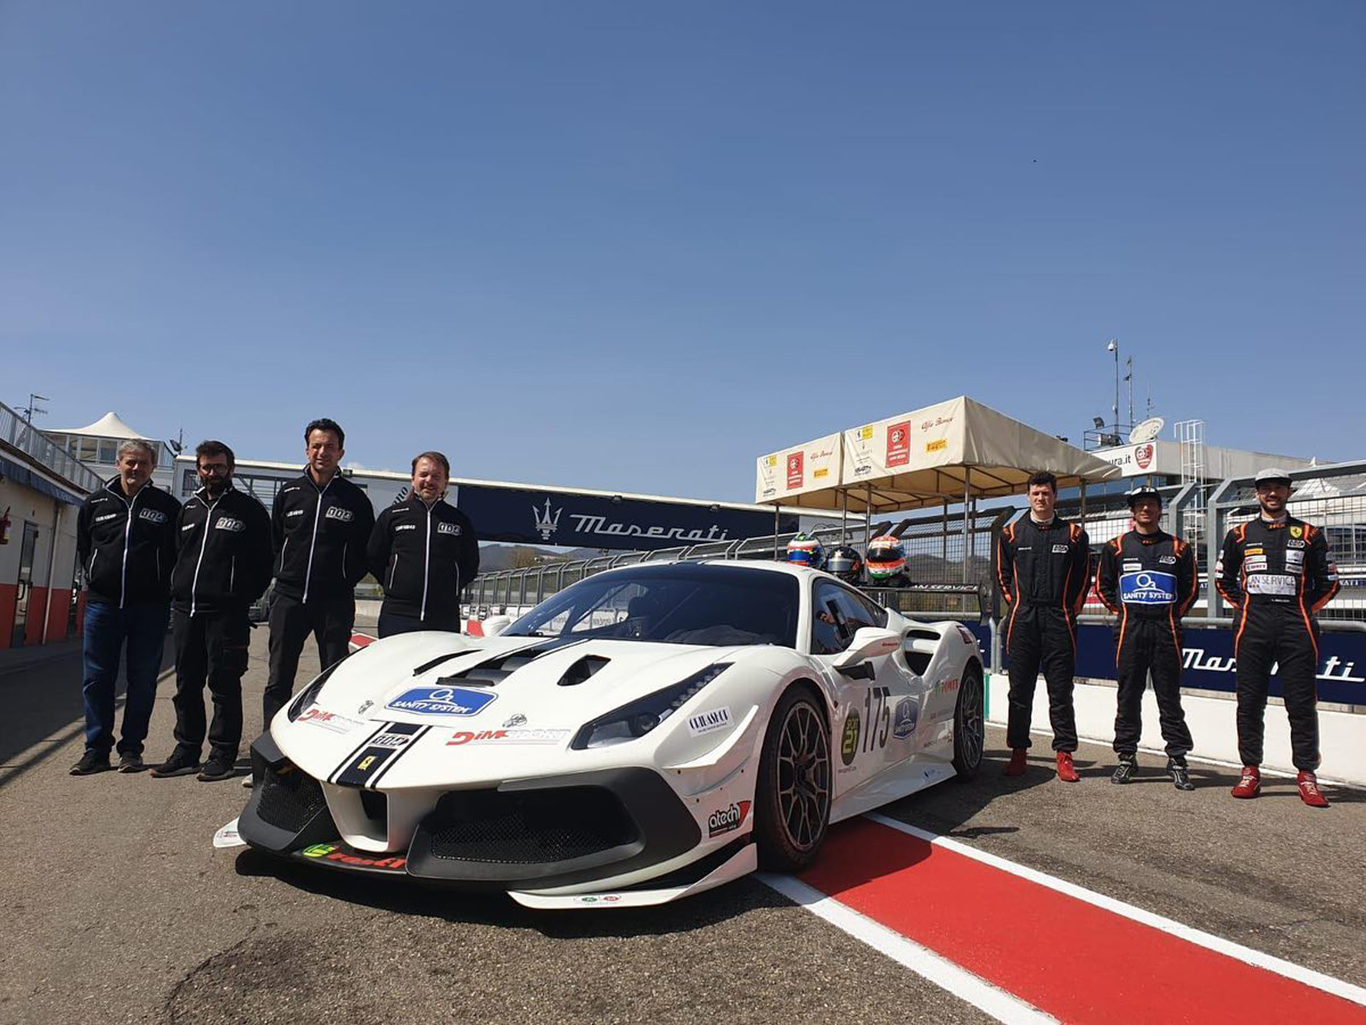 SR&R Confirms Ferrari 488 Challenge in GT Cup for Full Italian GT Season